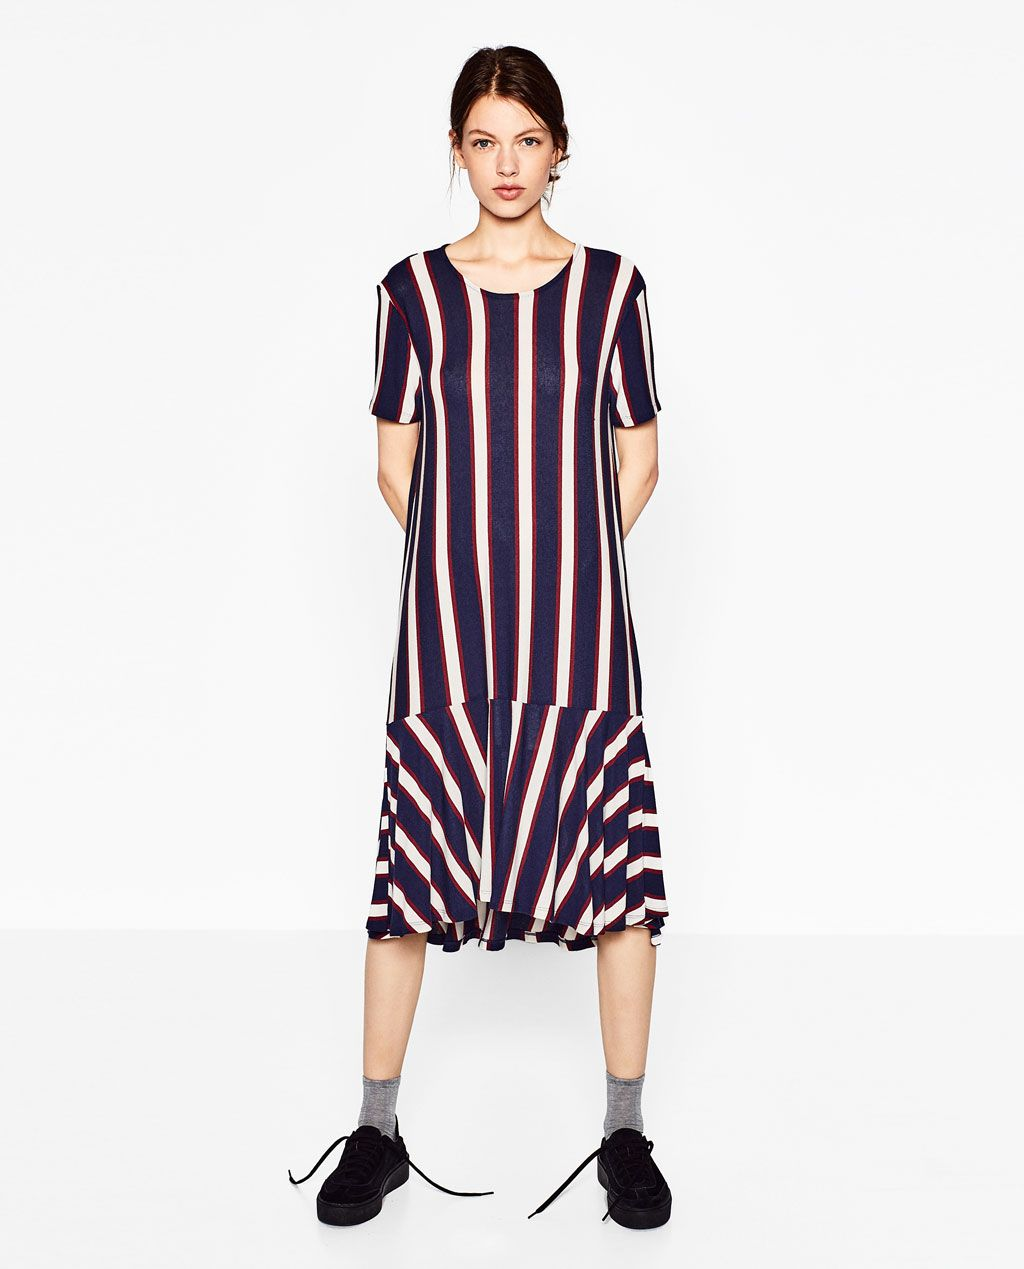 328cf2bb1e01 Image 1 of STRIPED DRESS WITH FRILL from Zara